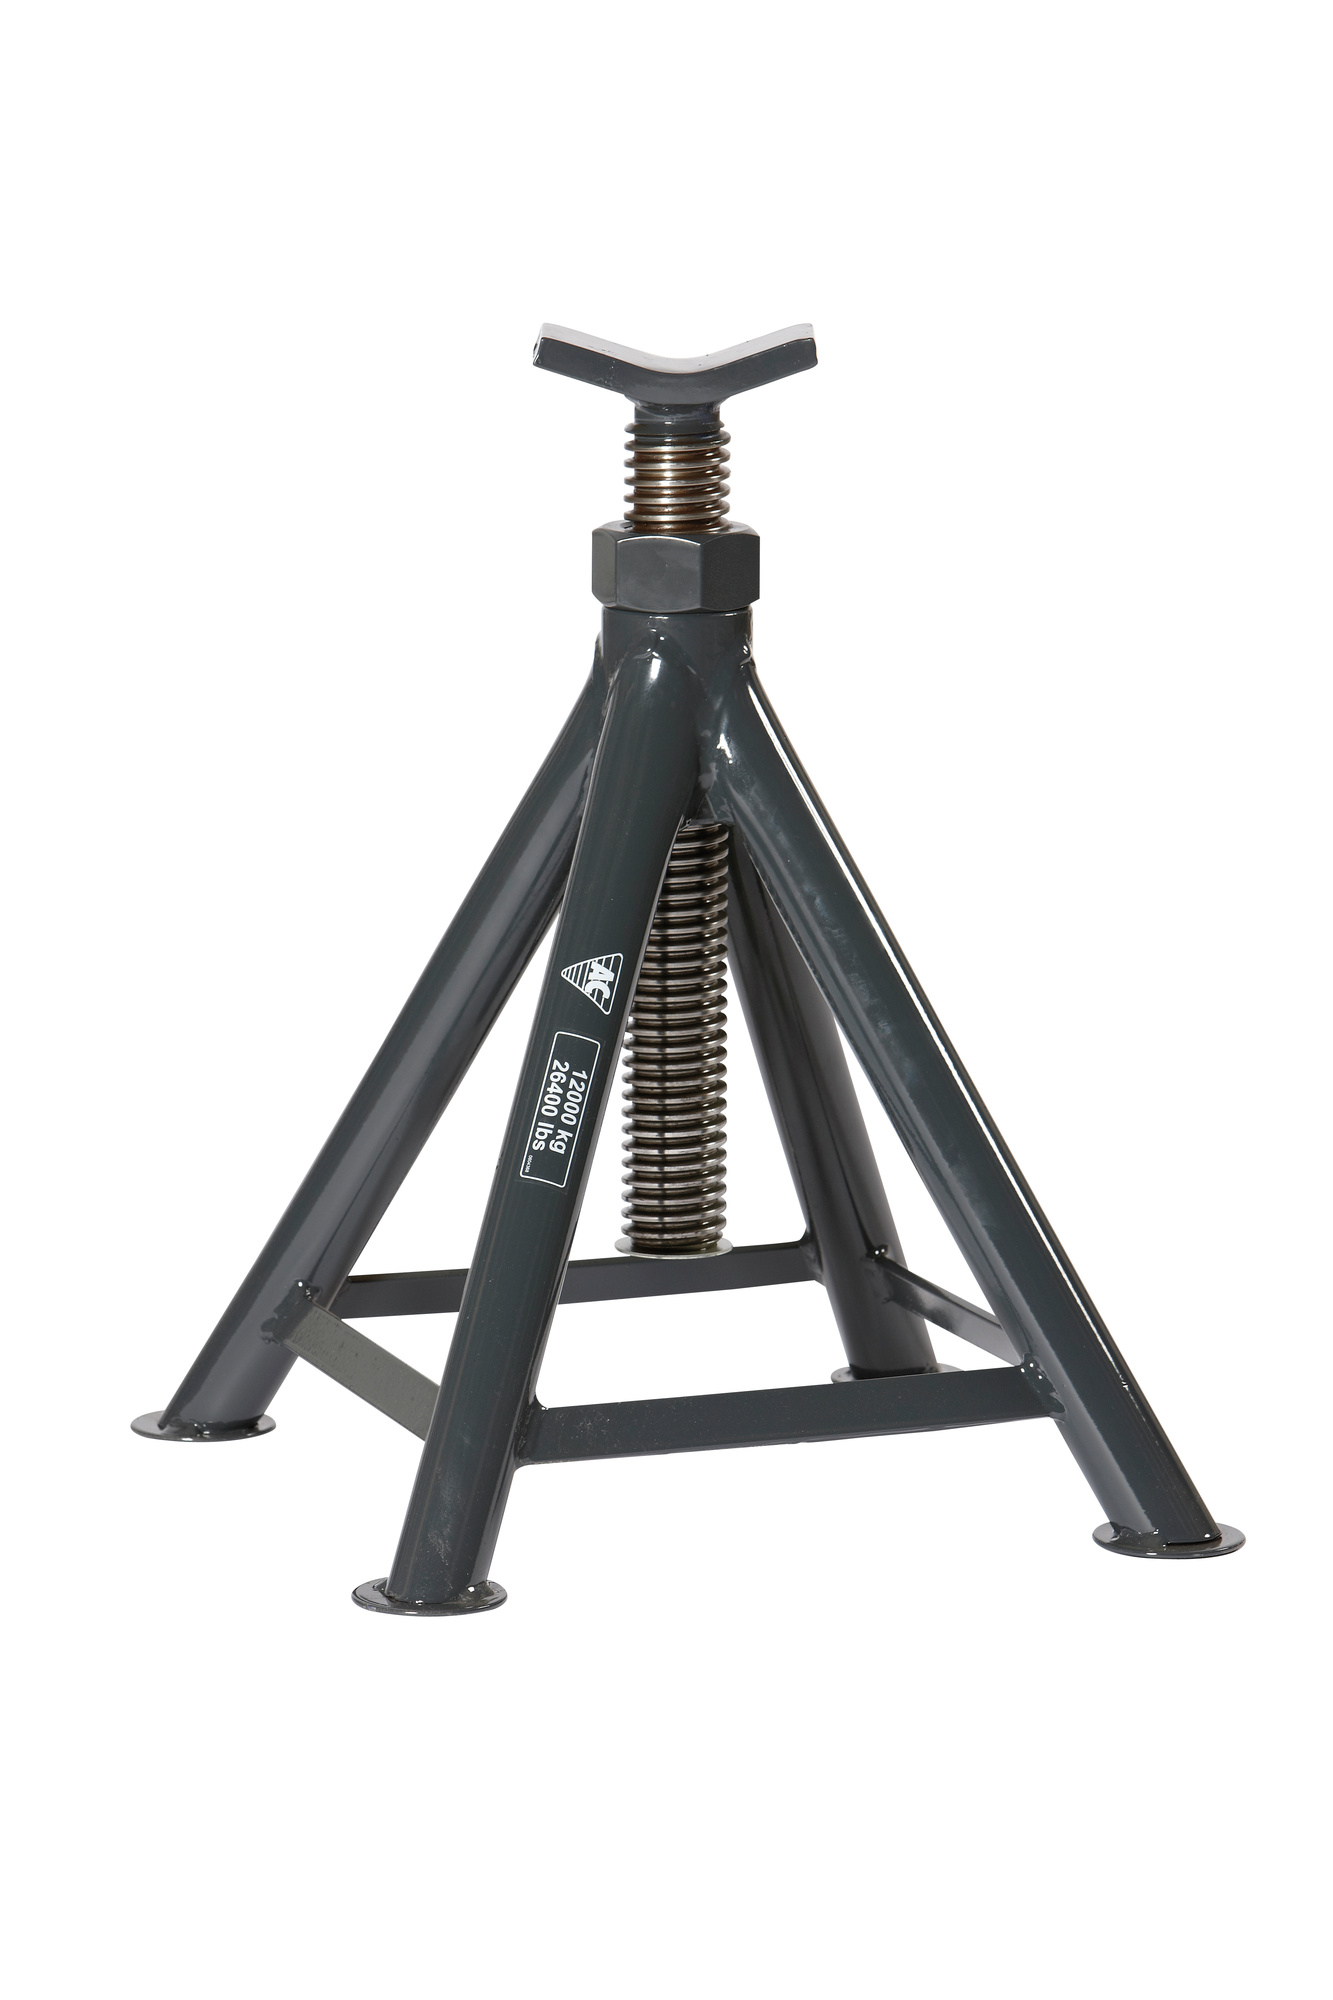 Axle Stand ABS12-450